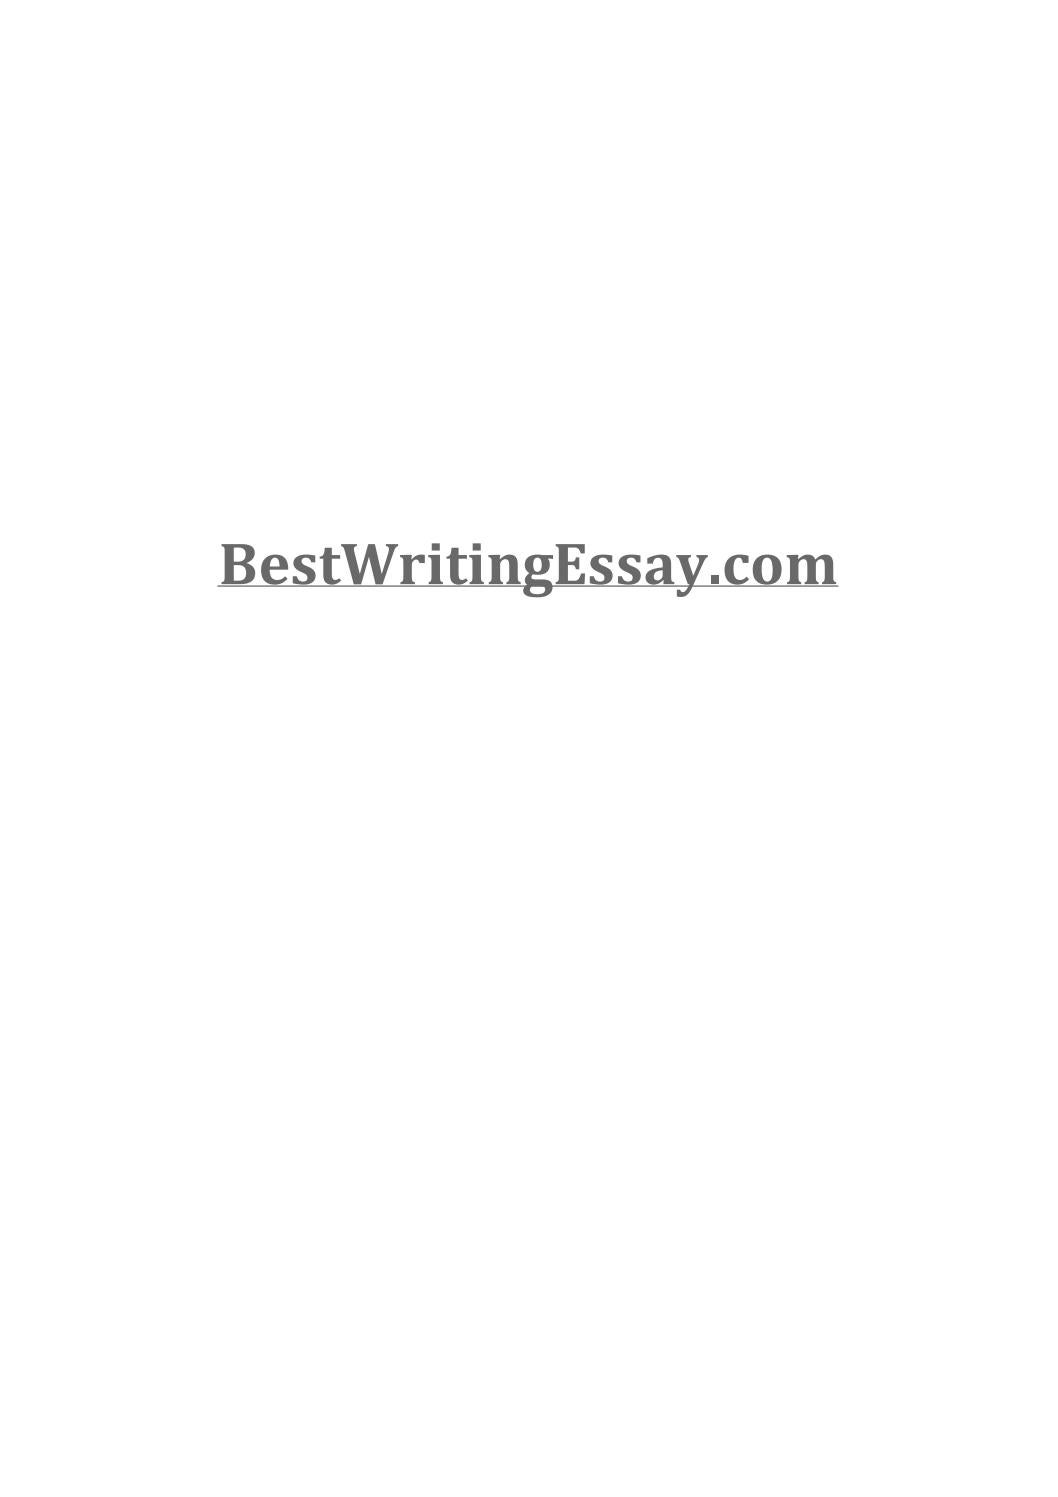 Thesis Example For Compare And Contrast Essay  Compare Contrast Essay Examples High School also Healthy Diet Essay High School Life Memories Essay By Codysqpeq  Issuu Sample Essays High School Students